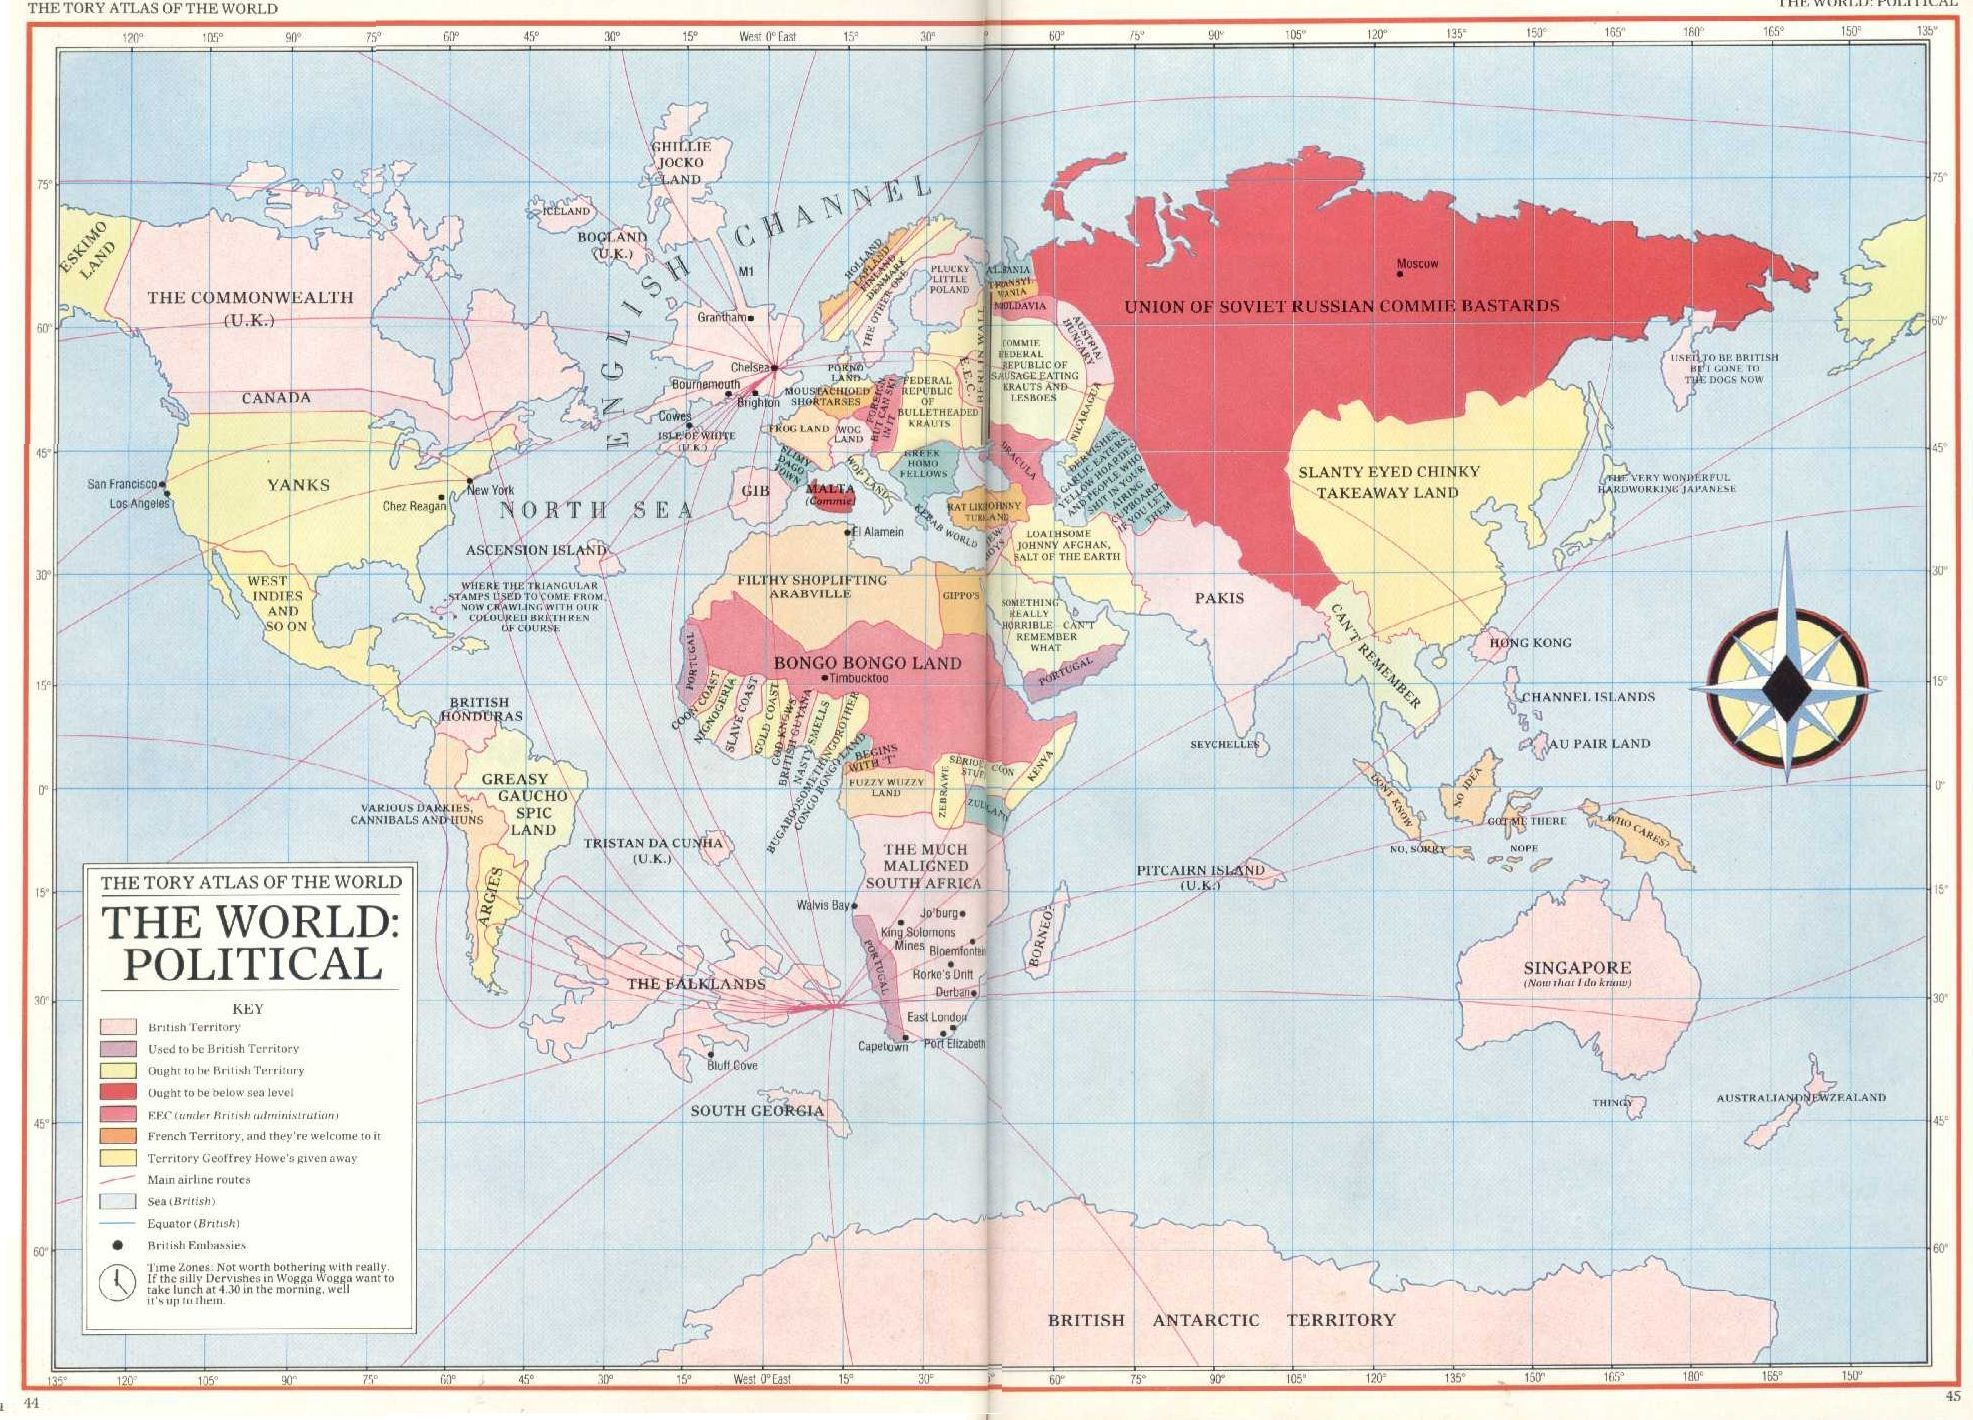 The tory atlas of the world west 0 eat 120 165 160 150 ifin